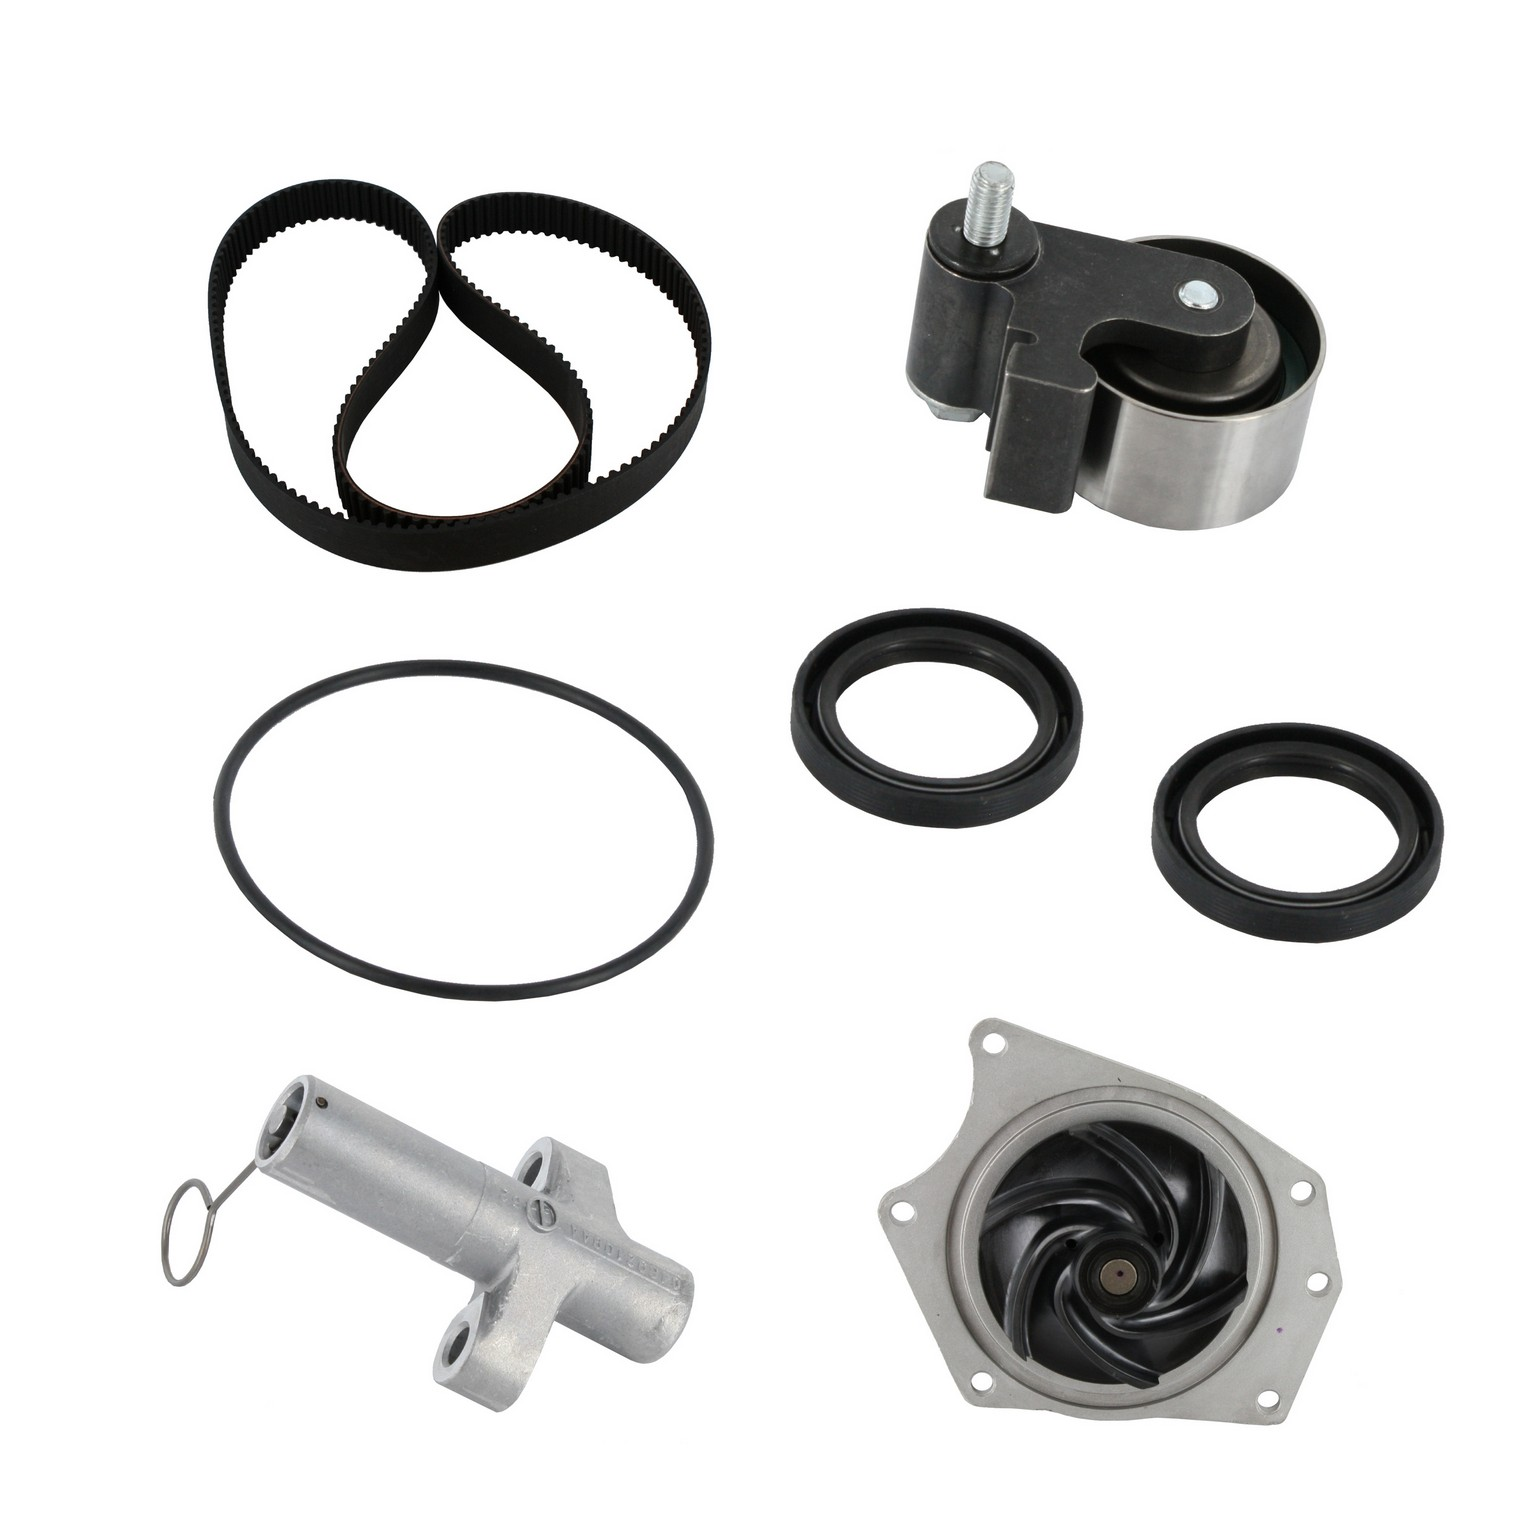 Dayco WP295K2A Engine Timing Belt Kit+Water Pump 12 Month 12,000 Mile Warranty